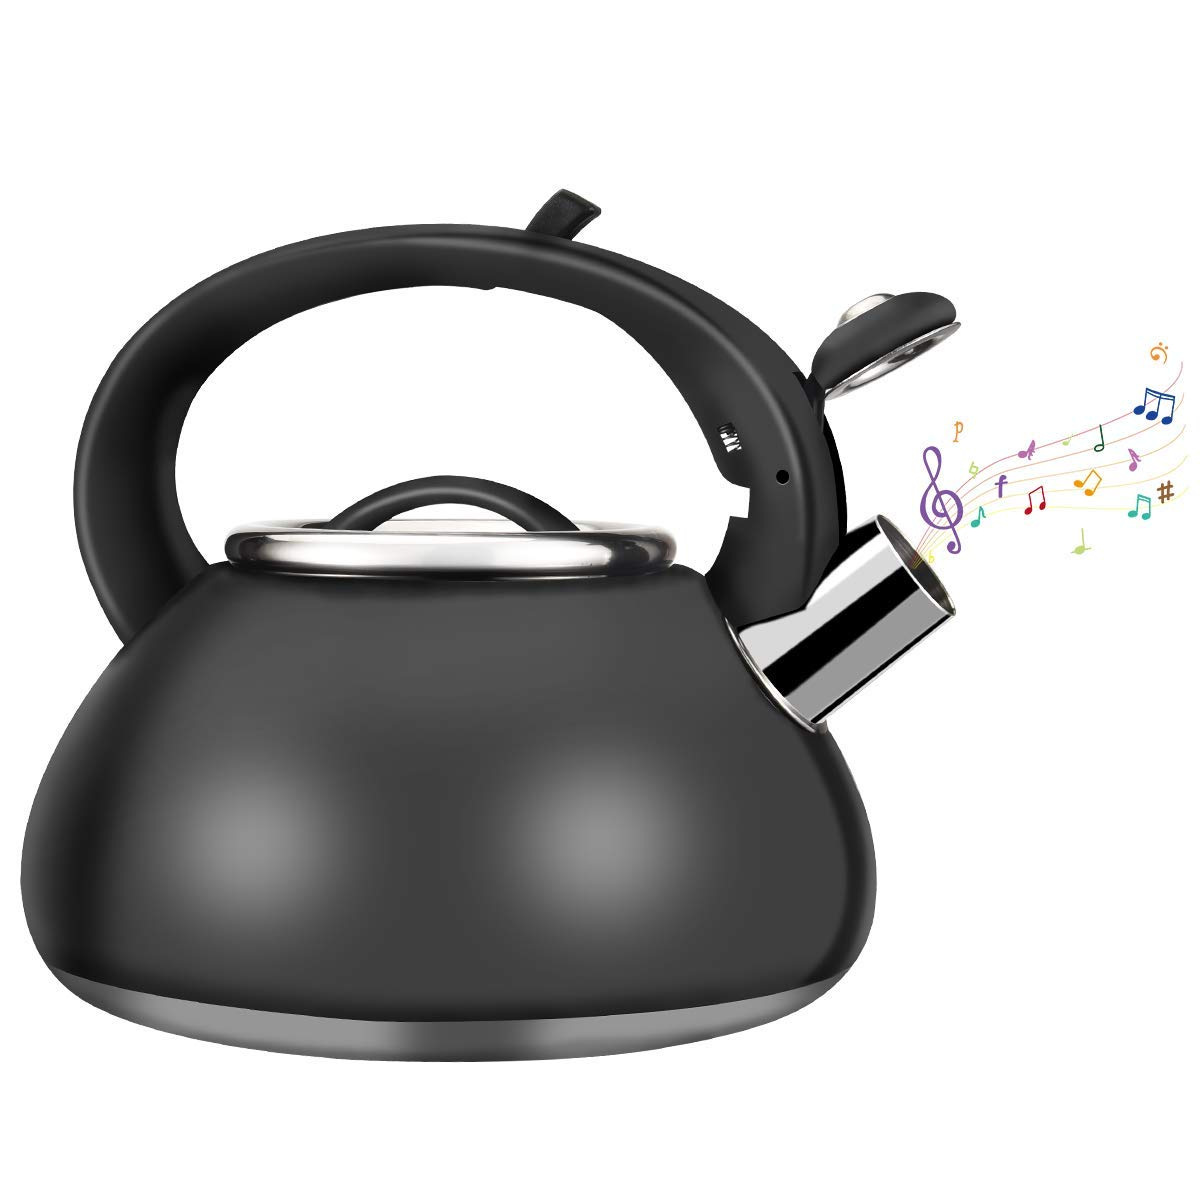 Whistling Stainless Steel Tea Kettle, Kinovation Food Grade Tea Pot with Heat-Proof Handle – Stovetop Suitable for All Heat Sources